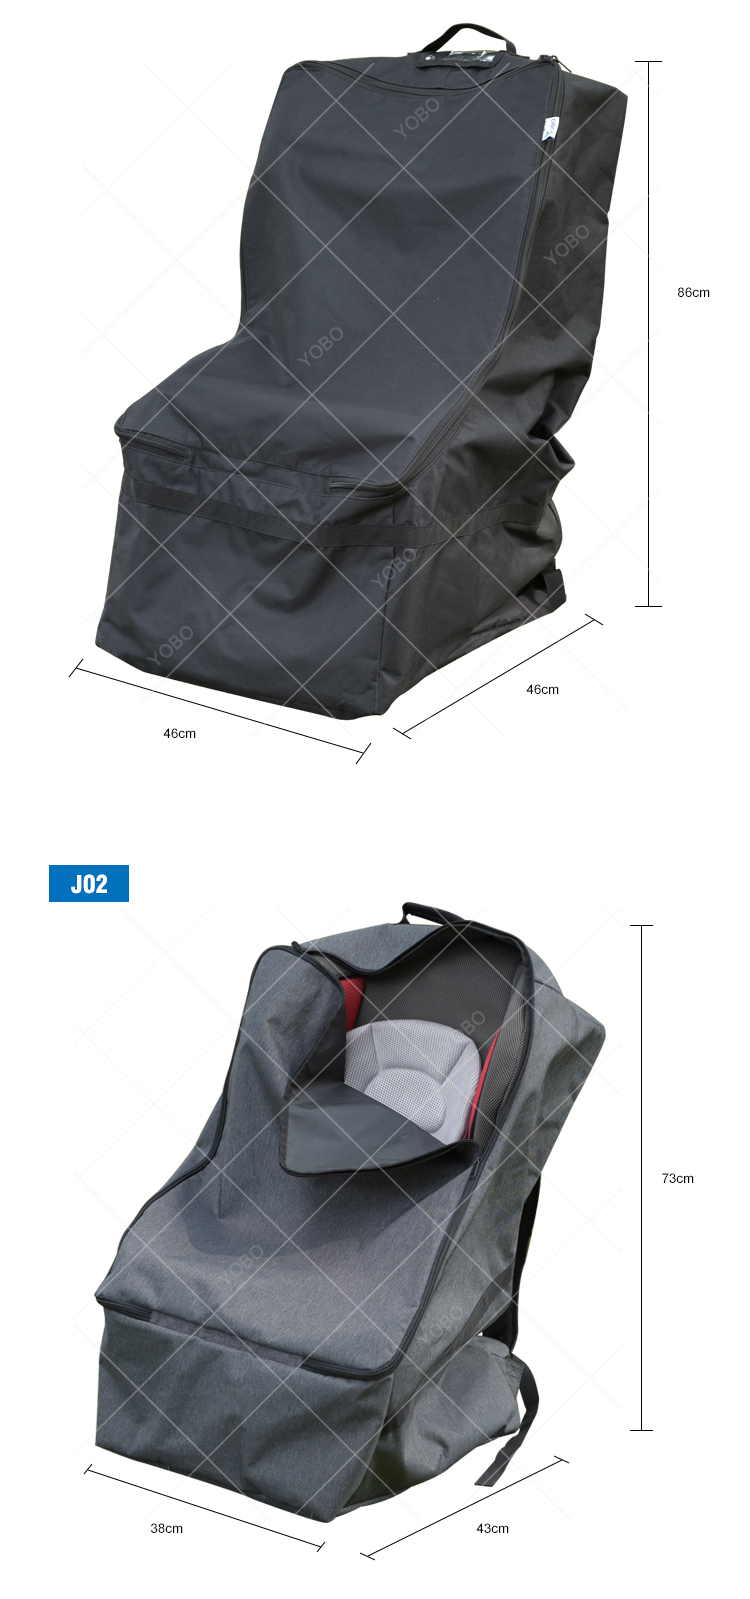 travel car seat for kids